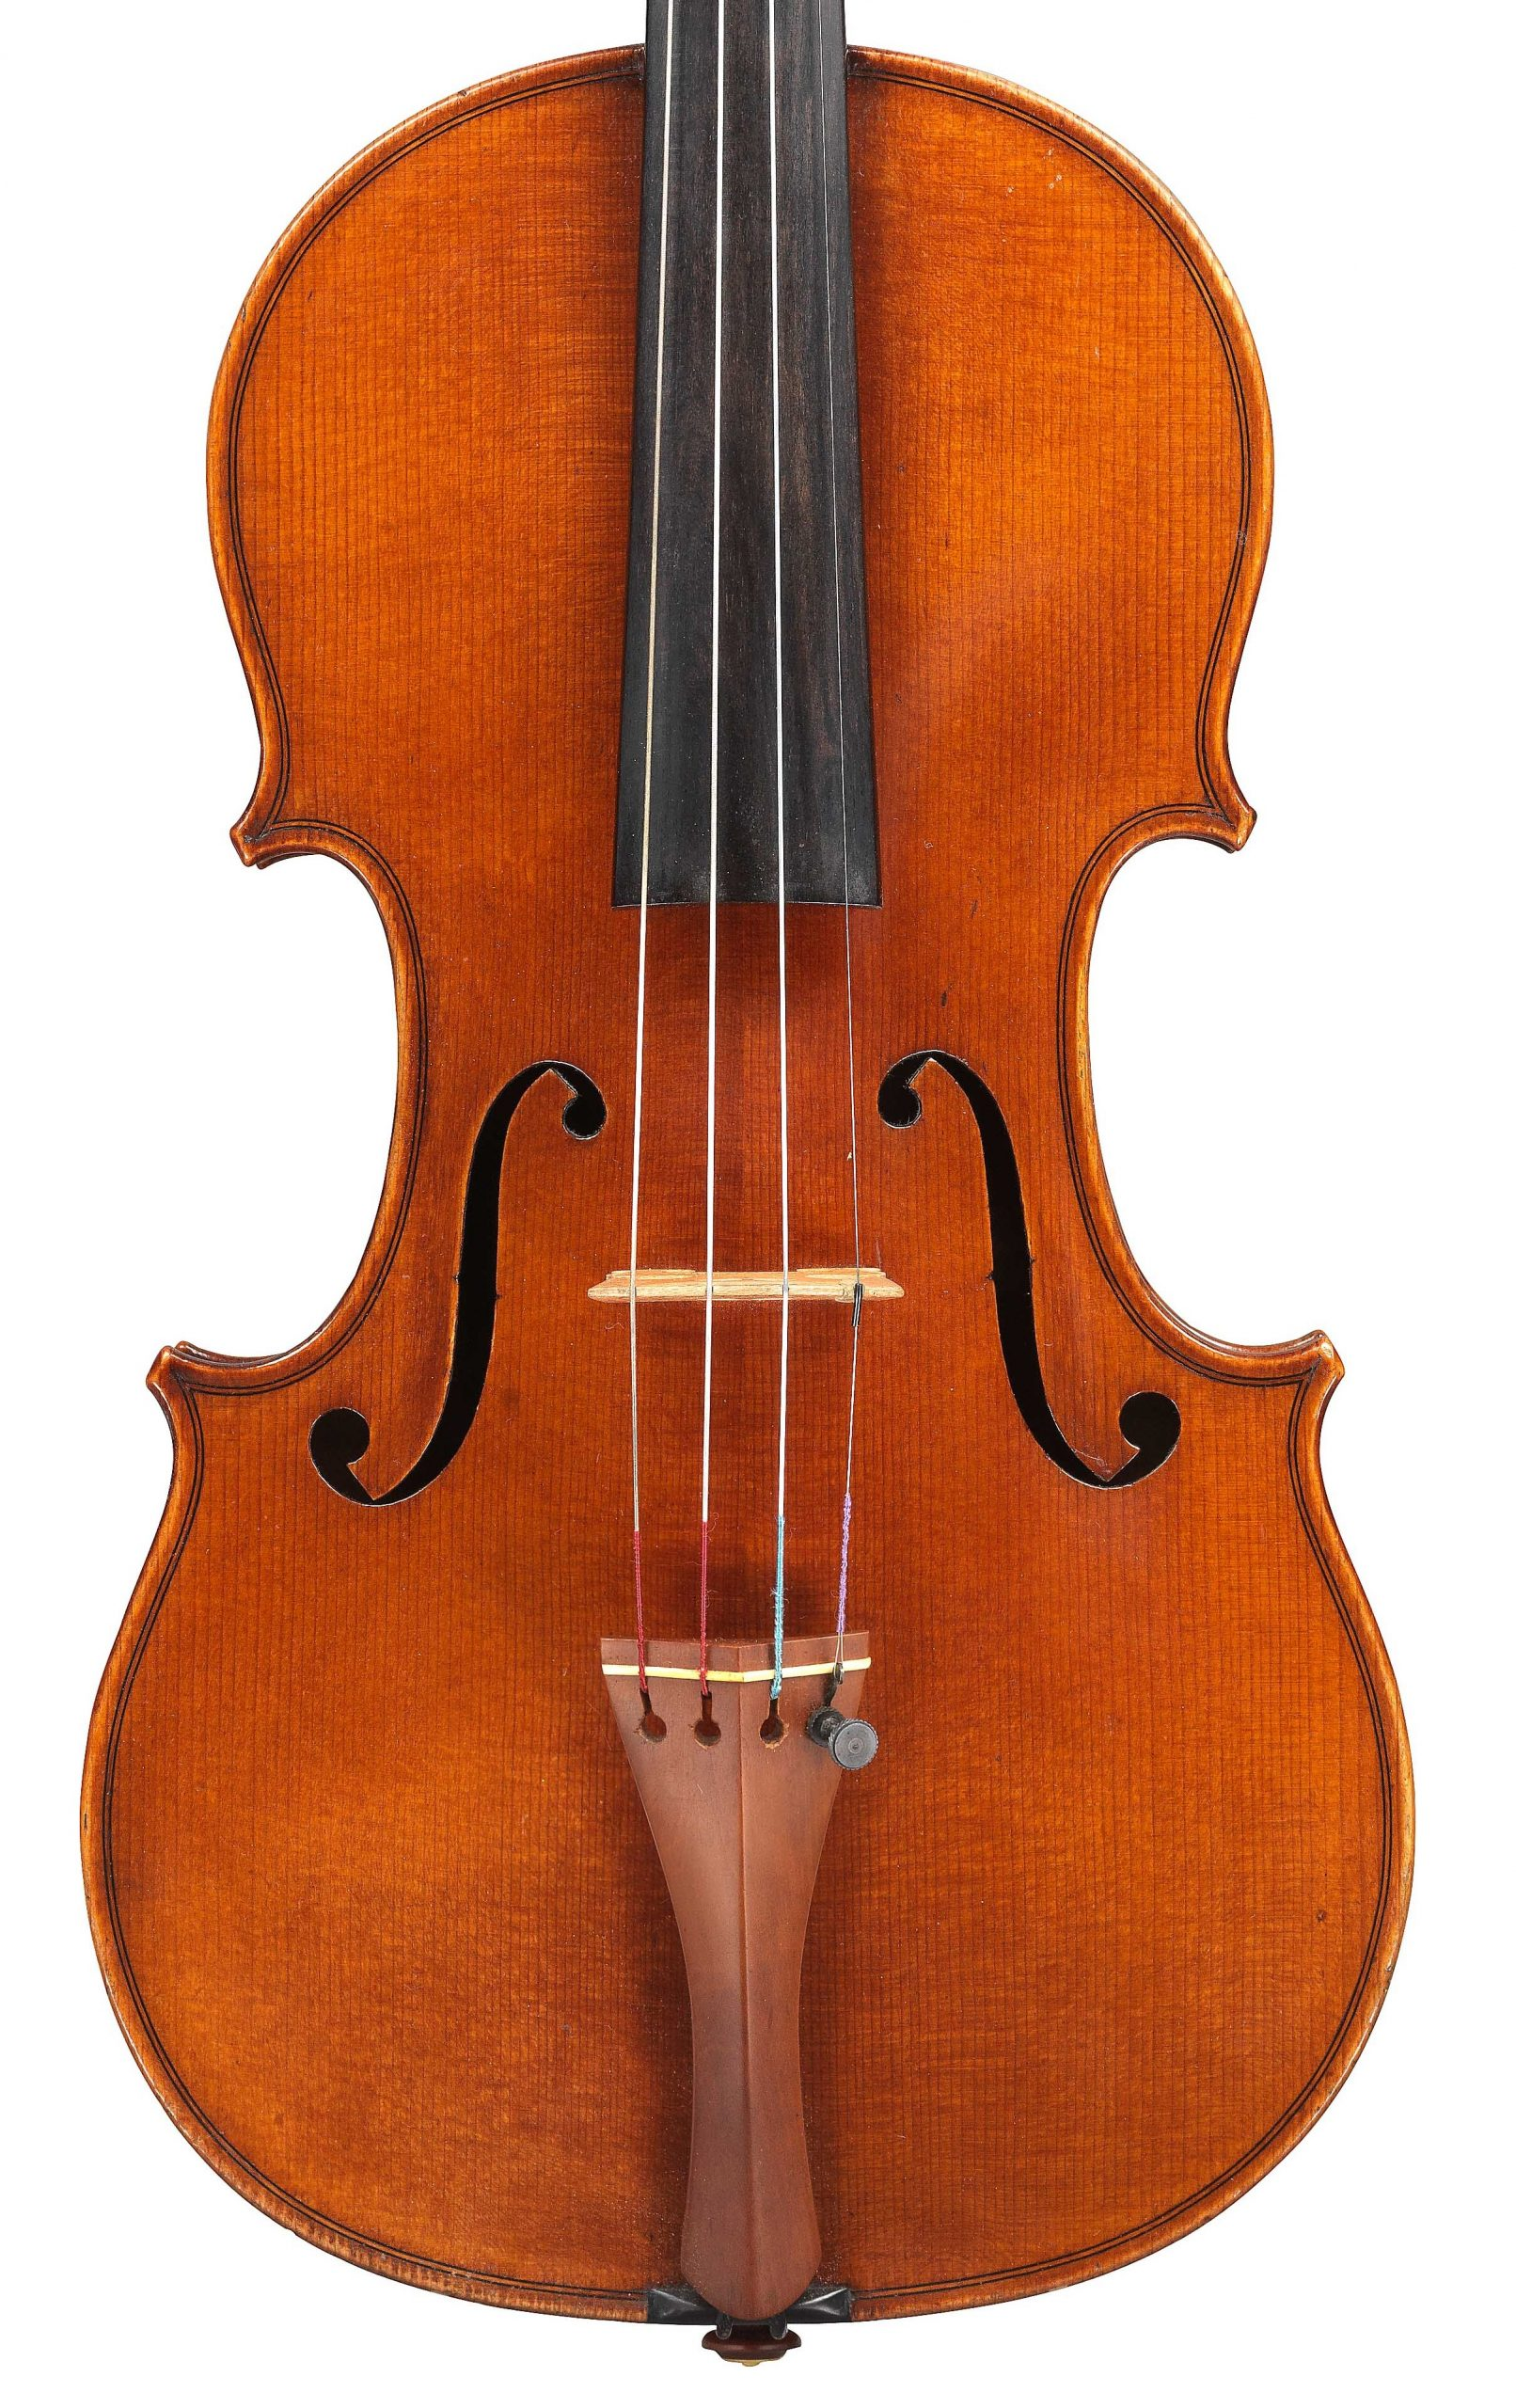 Front of violin by JB Vuillaume, ex-Sin, dated 1871, exhibited by Ingles & Hayday at Sotheby's in 2012